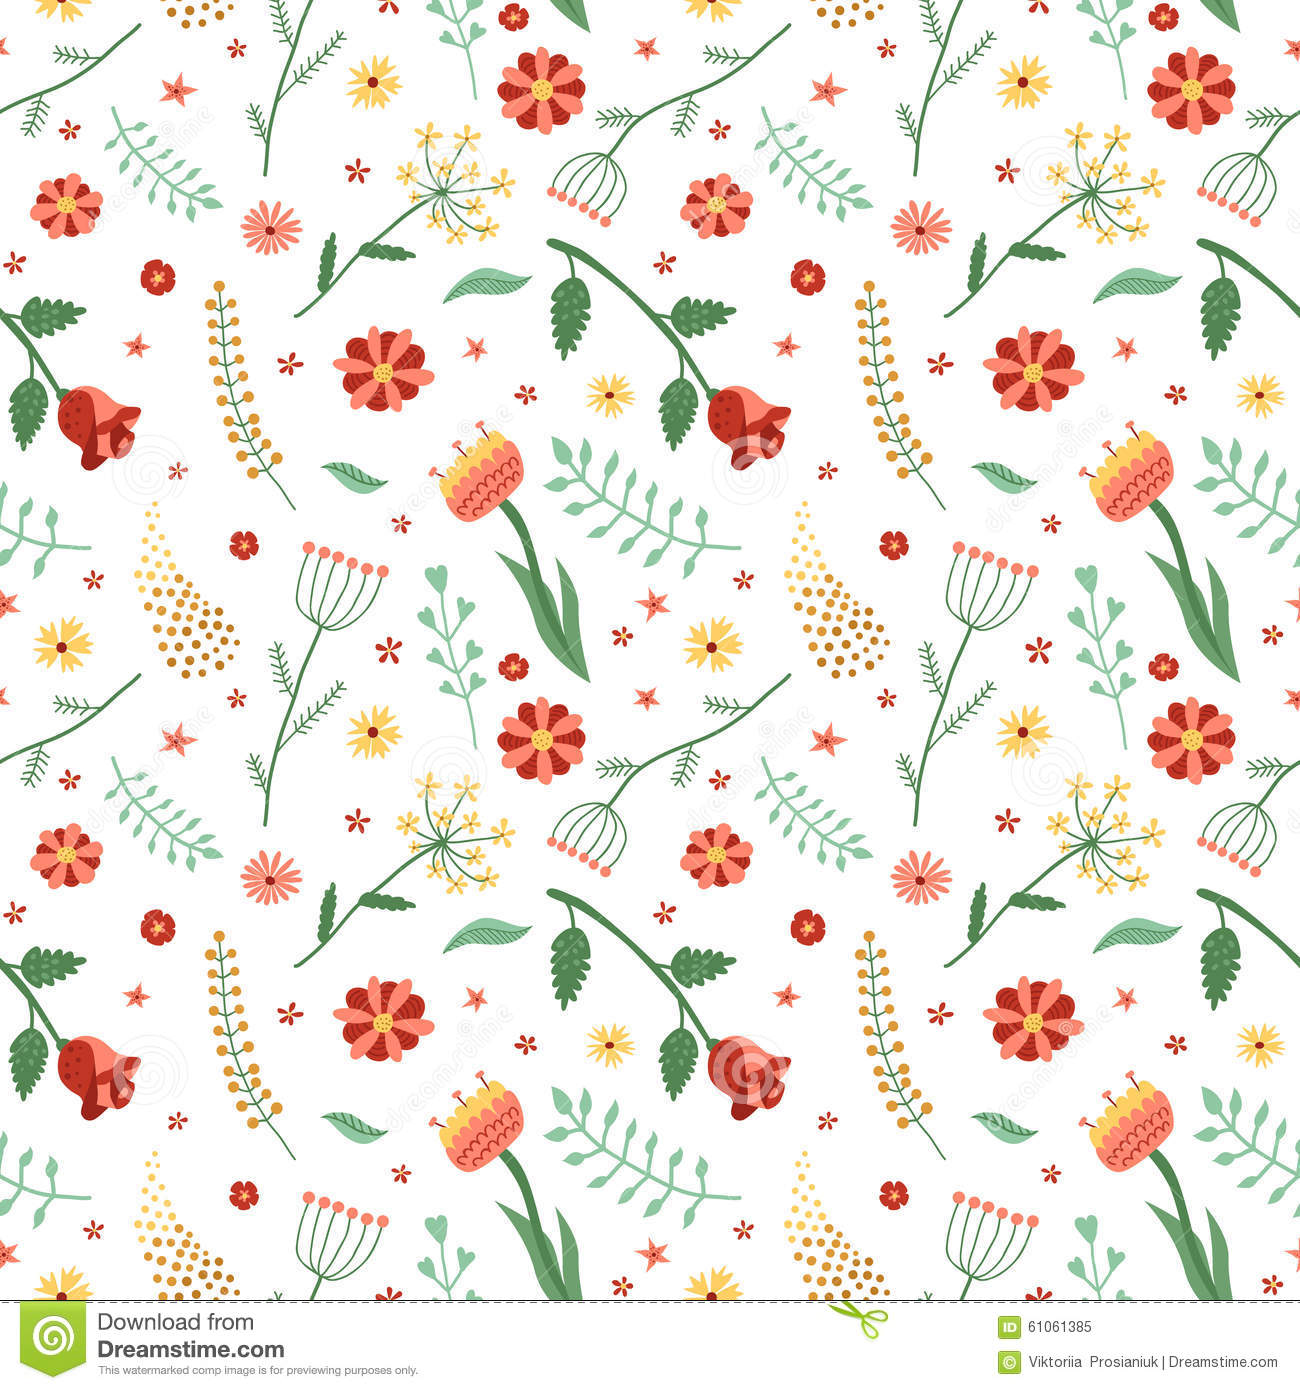 Floral and plant vector seamless pattern wrapping paper design floral and plant vector seamless pattern wrapping paper design mightylinksfo